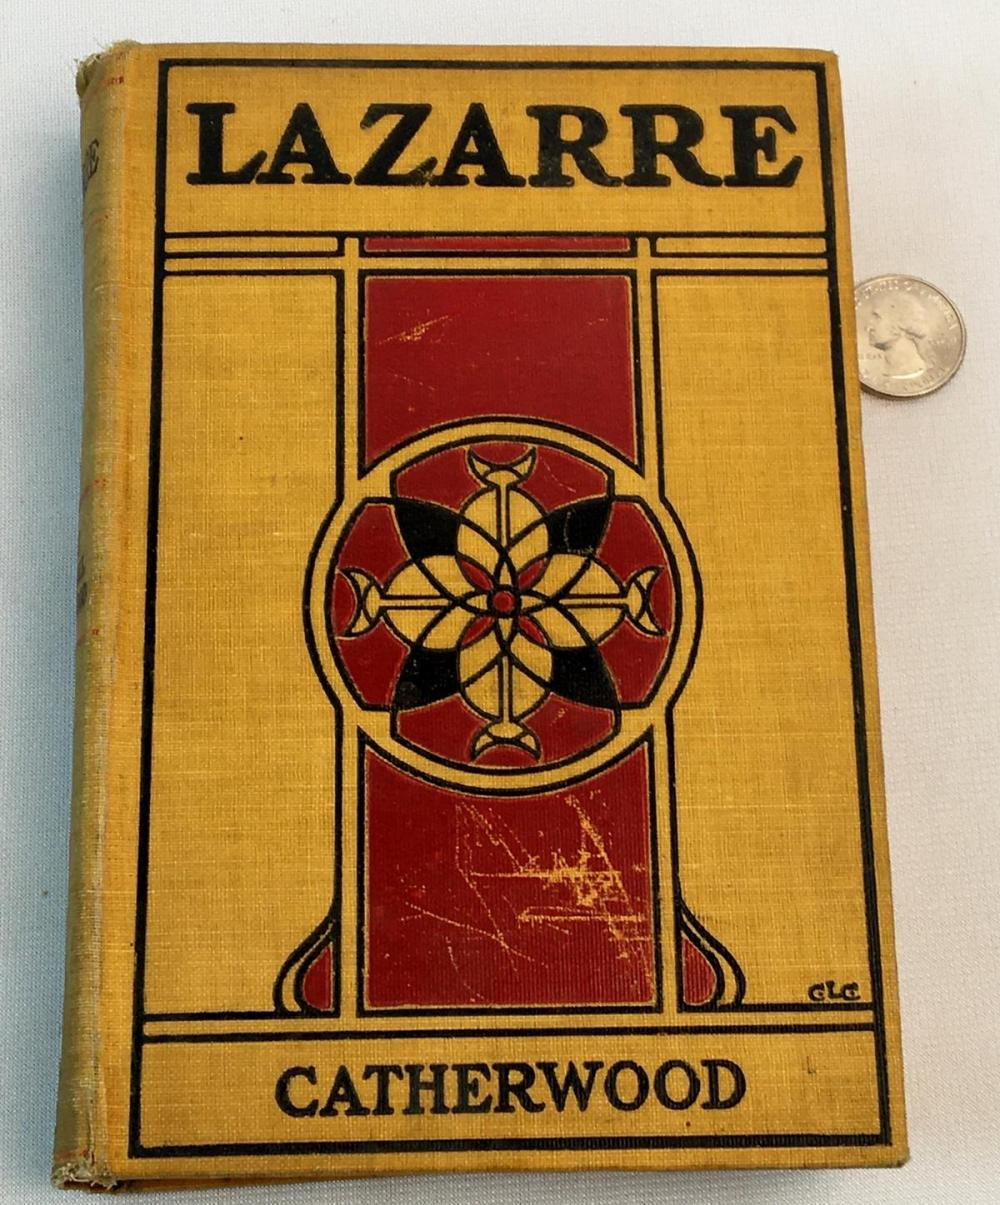 1901 Lazarre by Mary Hartwell Catherwood ILLUSTRATED